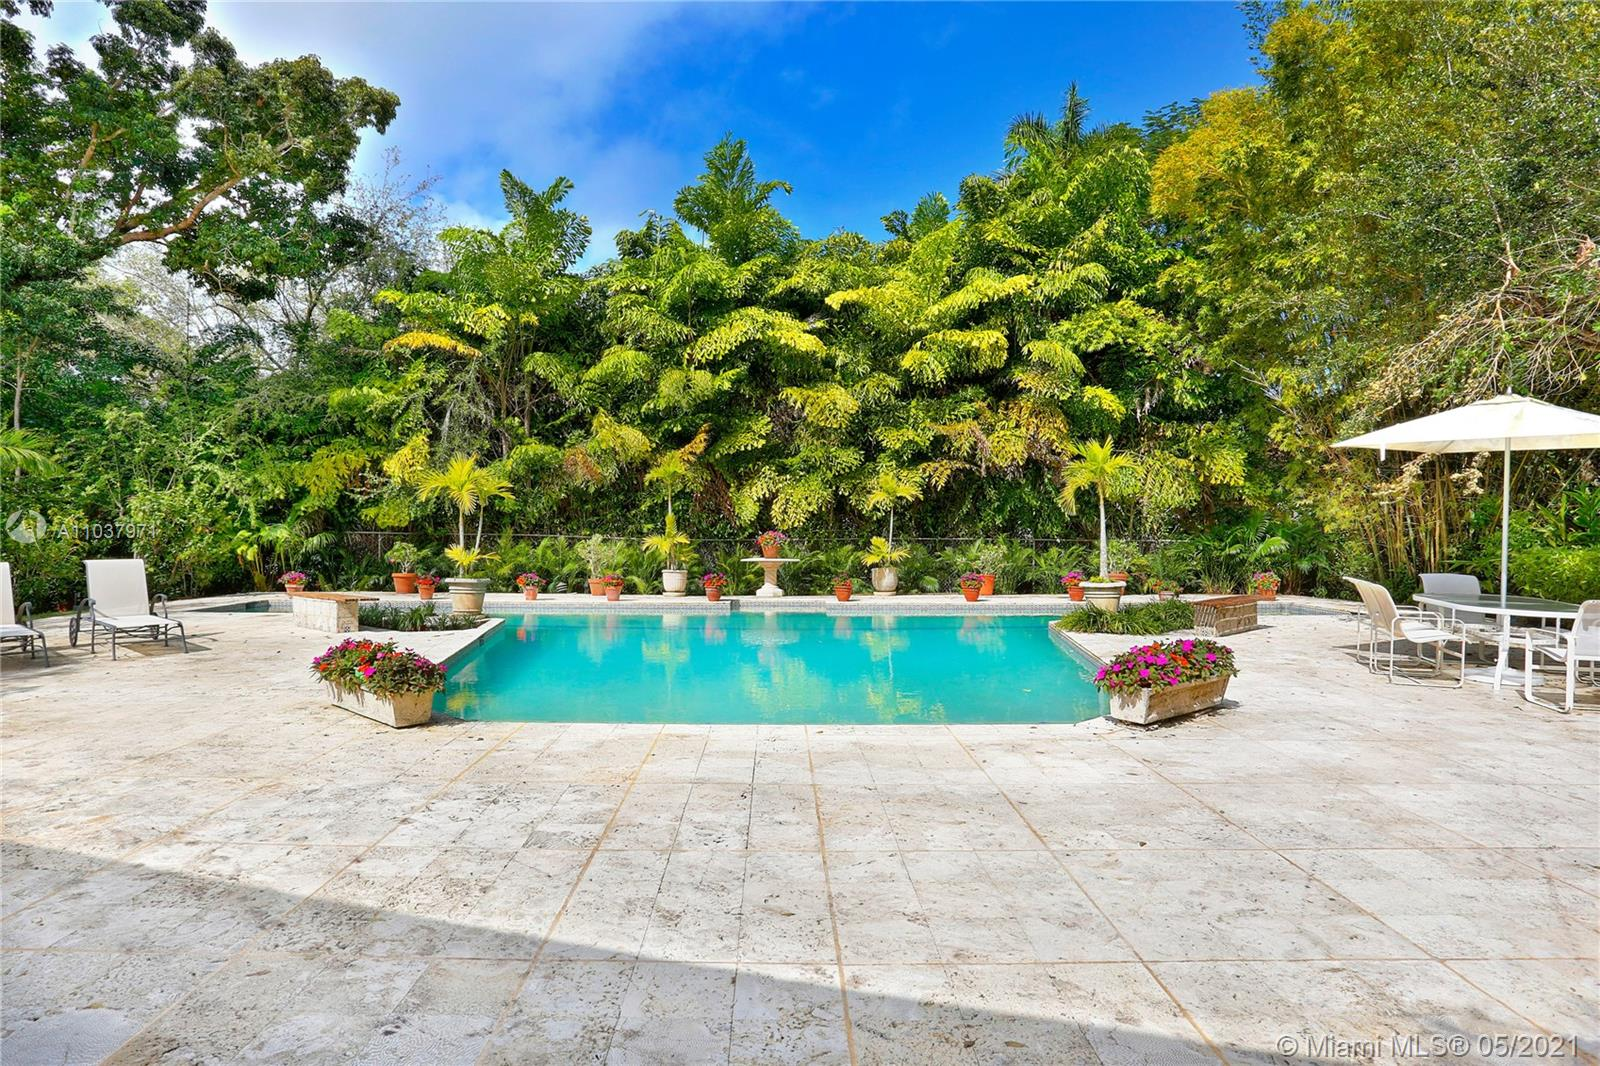 FABULOUS OPPORTUNITY TO DESIGN & BUILD YOUR DREAM HOME IN THE NEWLY APPROVED GATED COMMUNITY W/ PRIVATE SECURITY, HAMMOCK LAKES 2. THIS GENEROUS 31799 SF LOT IS PERFECT FOR THOSE WHO SEEK PRIVACY, ENJOY ENTERTAINING WITH FRIENDS & FAMILY. DESIRABLE LOCATION IN CORAL GABLES WITH NEARBY PARKS, TOP SCHOOLS, BIKING TRAILS, SHOPPING AND FINE DINING. MAKE THIS YOUR NEW HOME! IT WONT LAST!